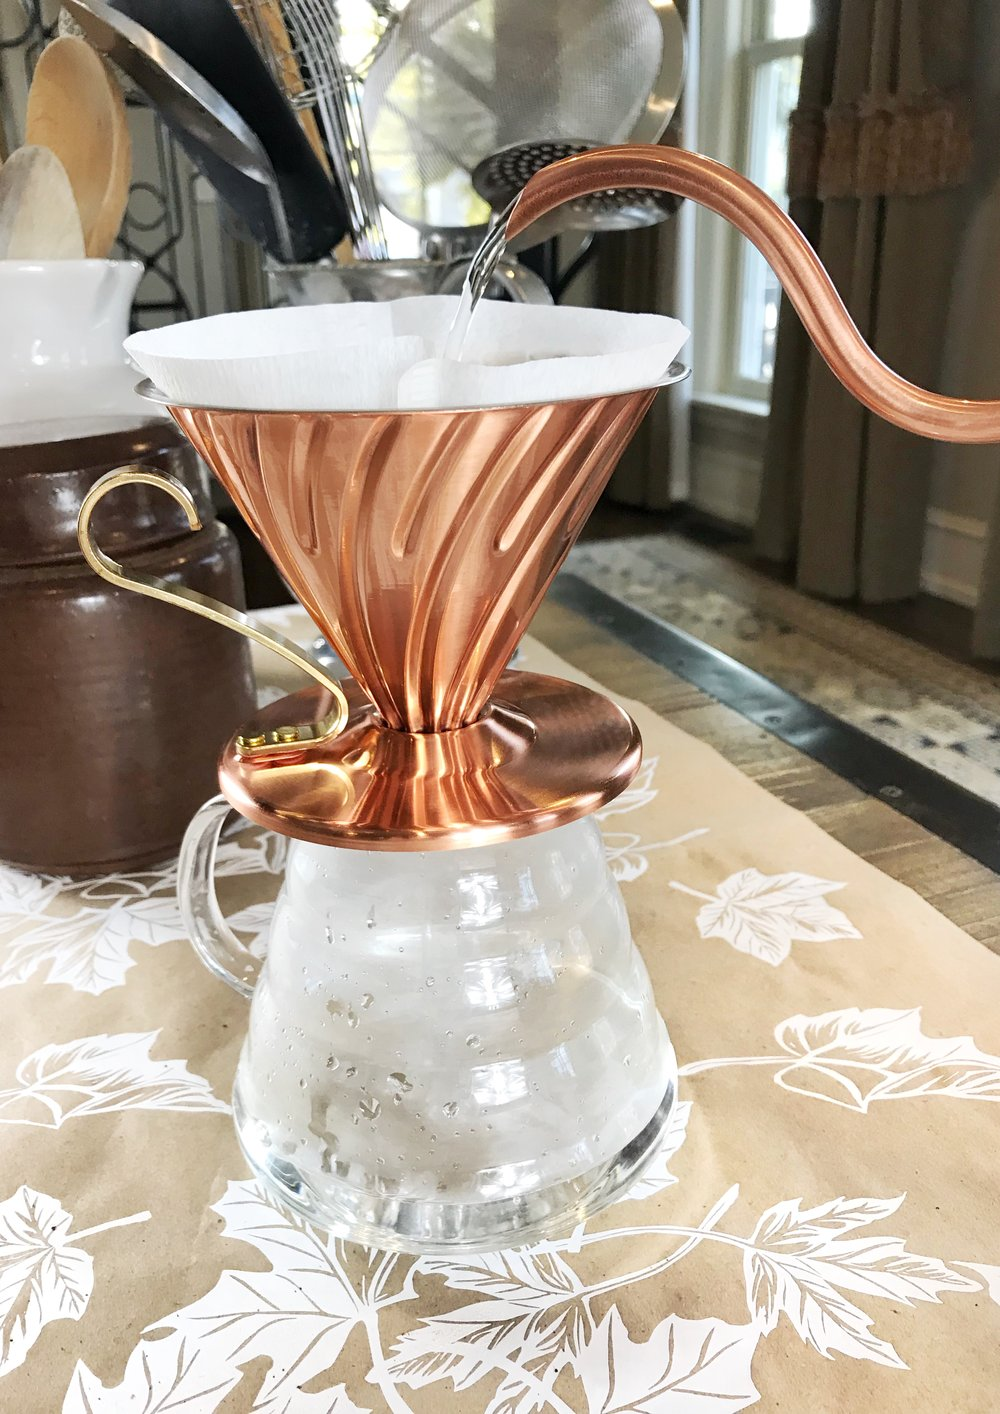 Step 3:Moisten the coffee filter - Put water in you kettle (or just into another glass if you'd like) and dampen the coffee filter. This prevents your pour over coffee from taking on a